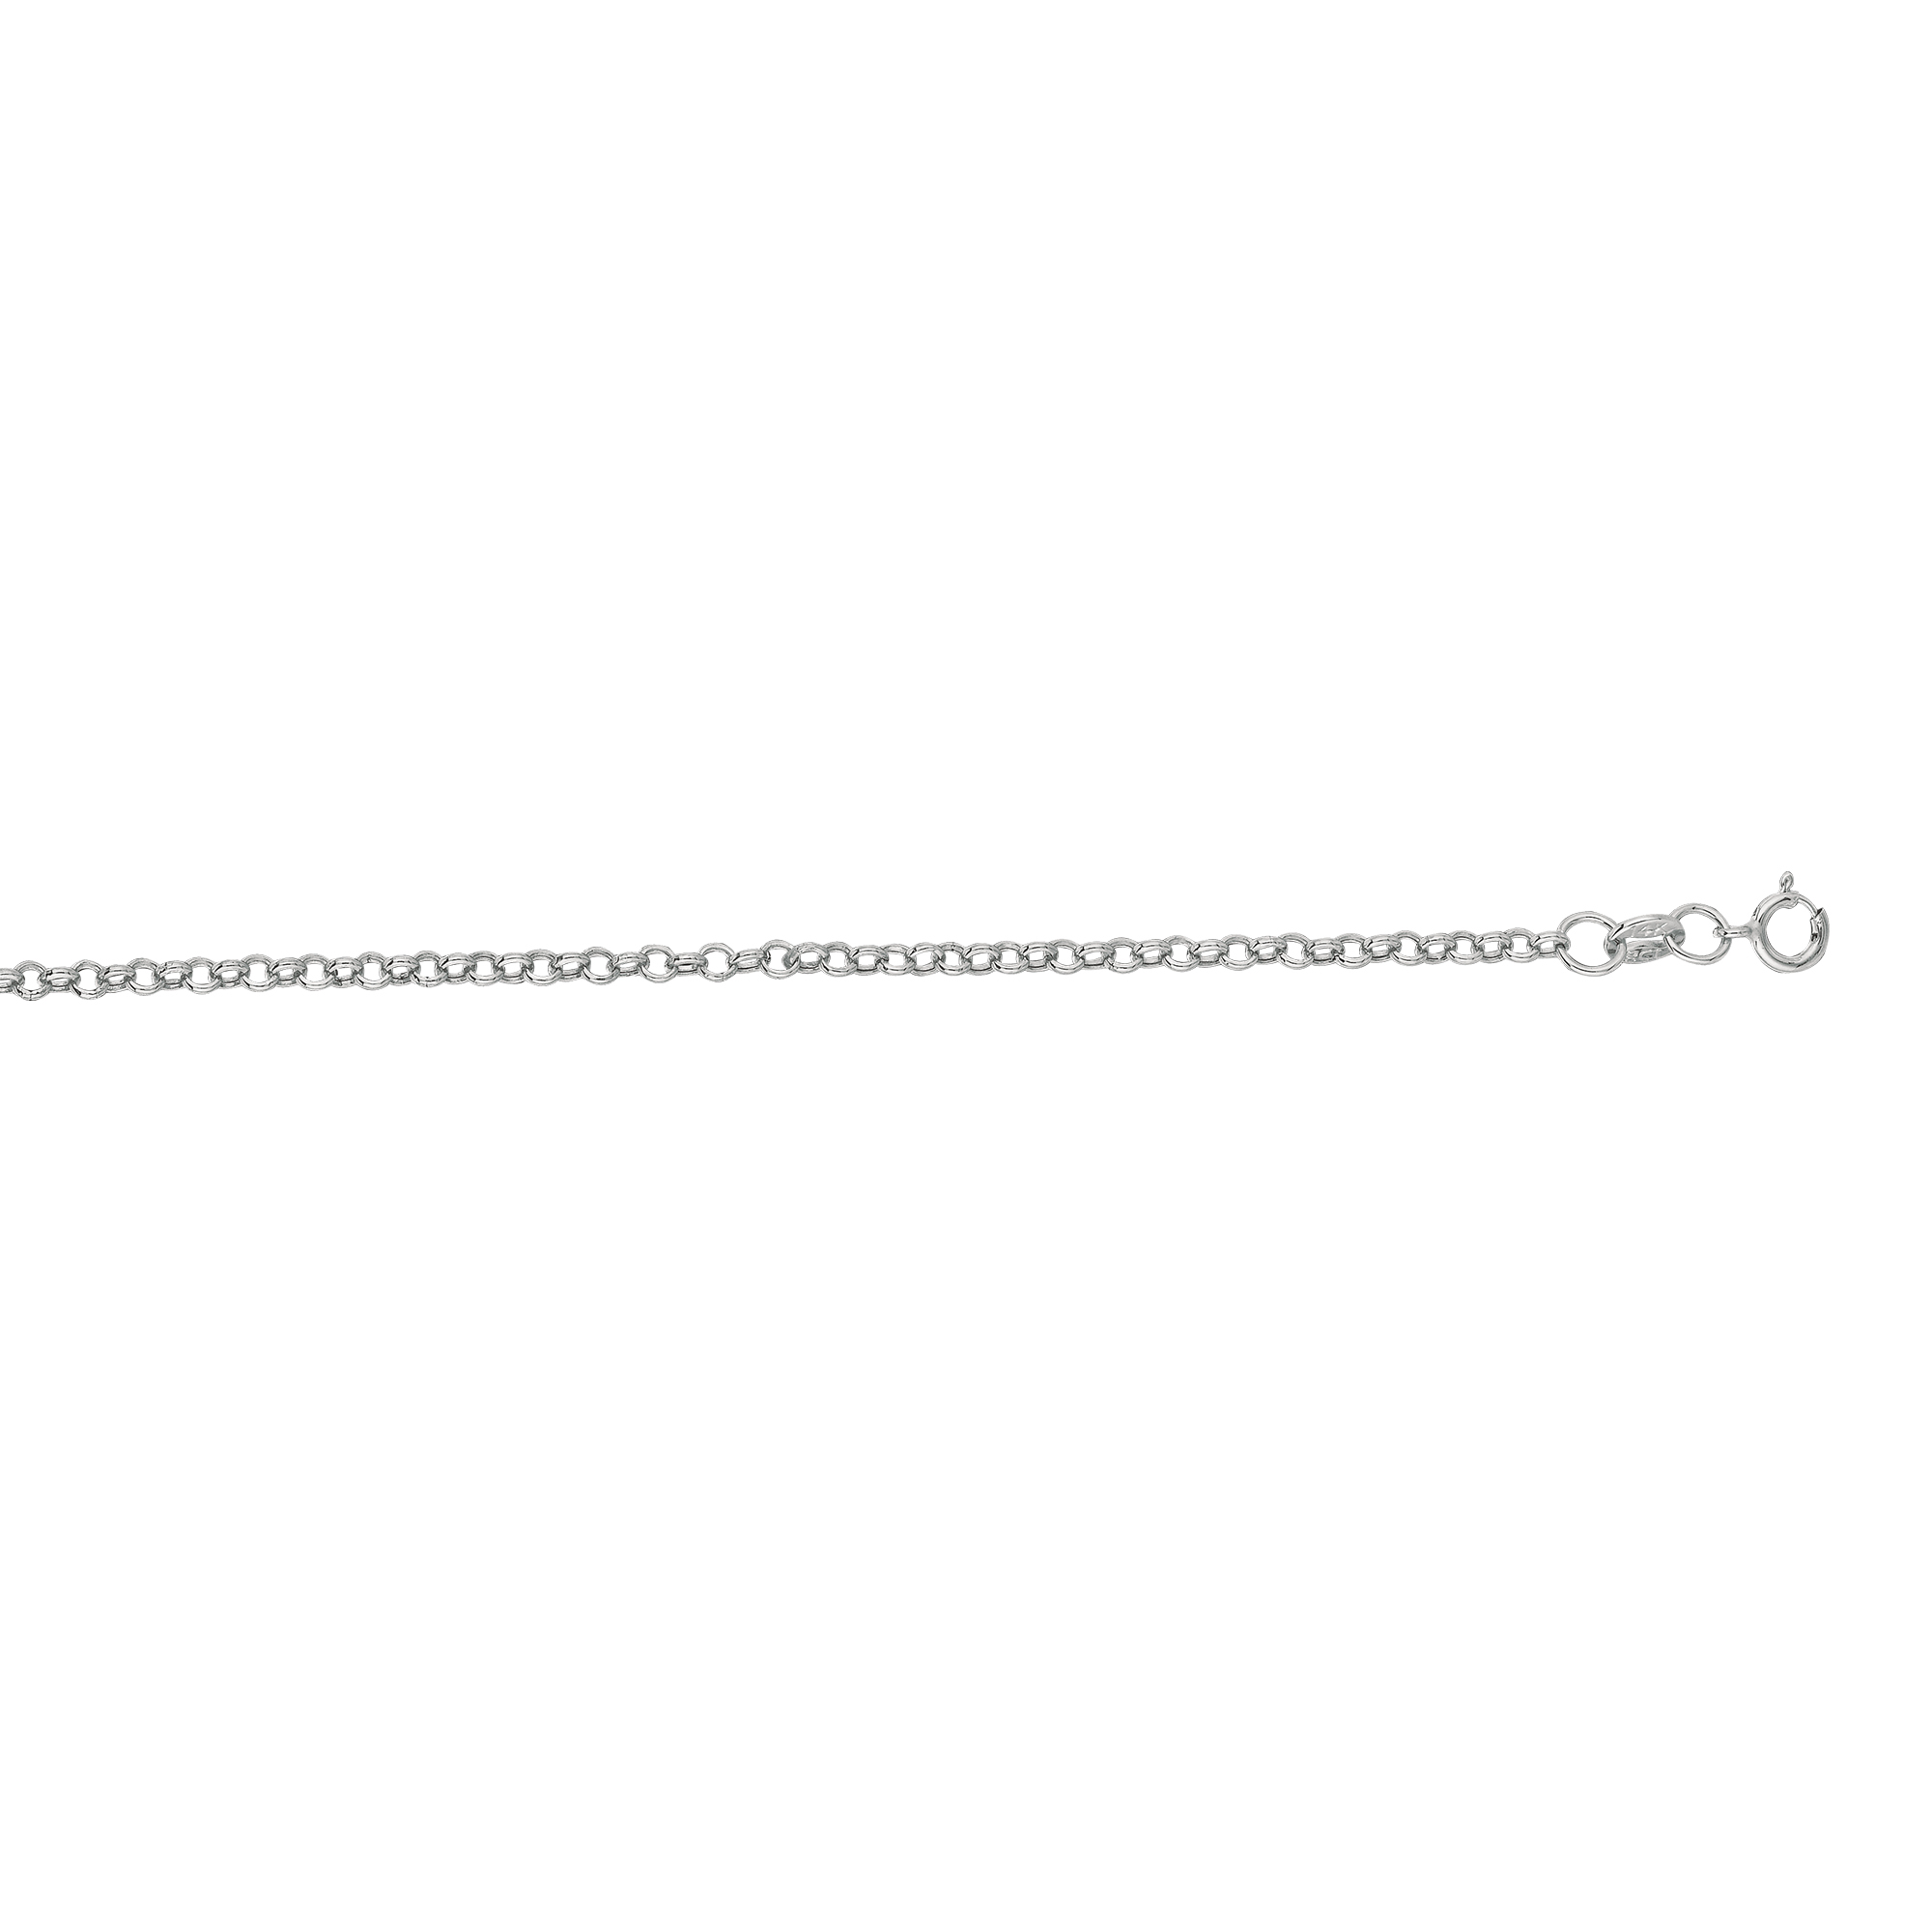 Hollow 14k Gold Rolo Chain For Men & Women 2mm Wide